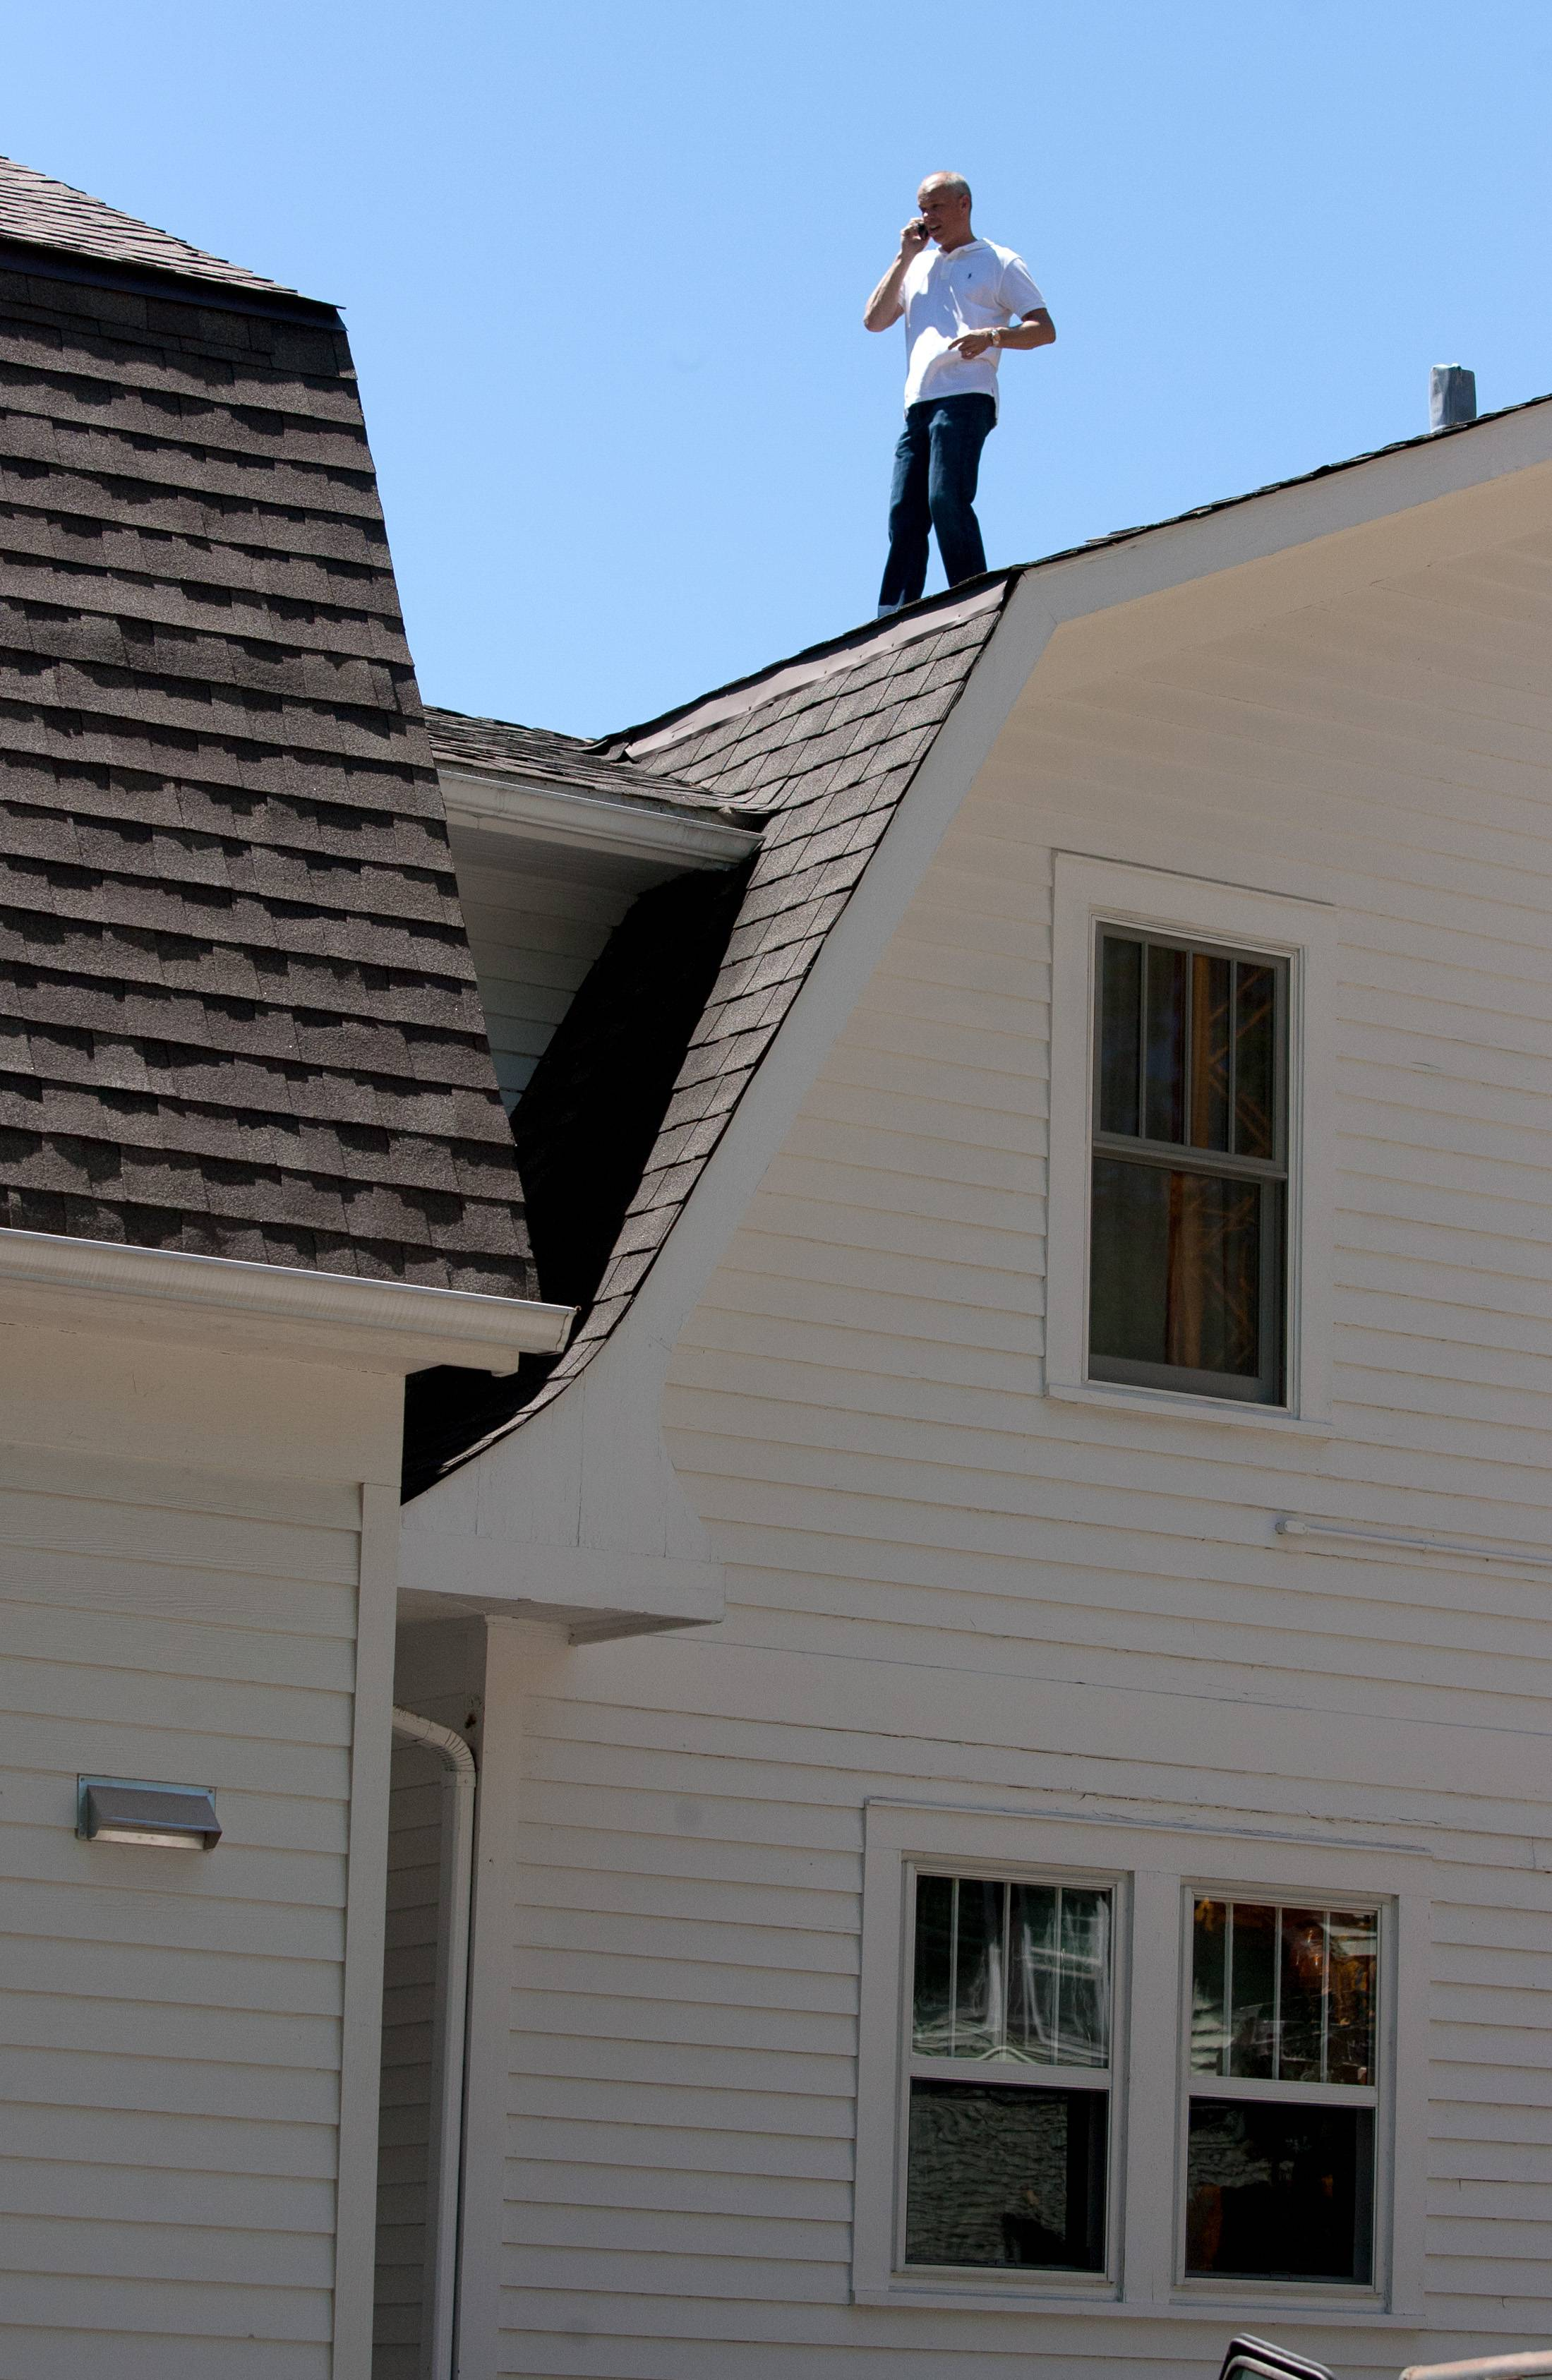 Greg Morey surveys the roofline after moving a coach house from next door to his family's Glen Ellyn property.